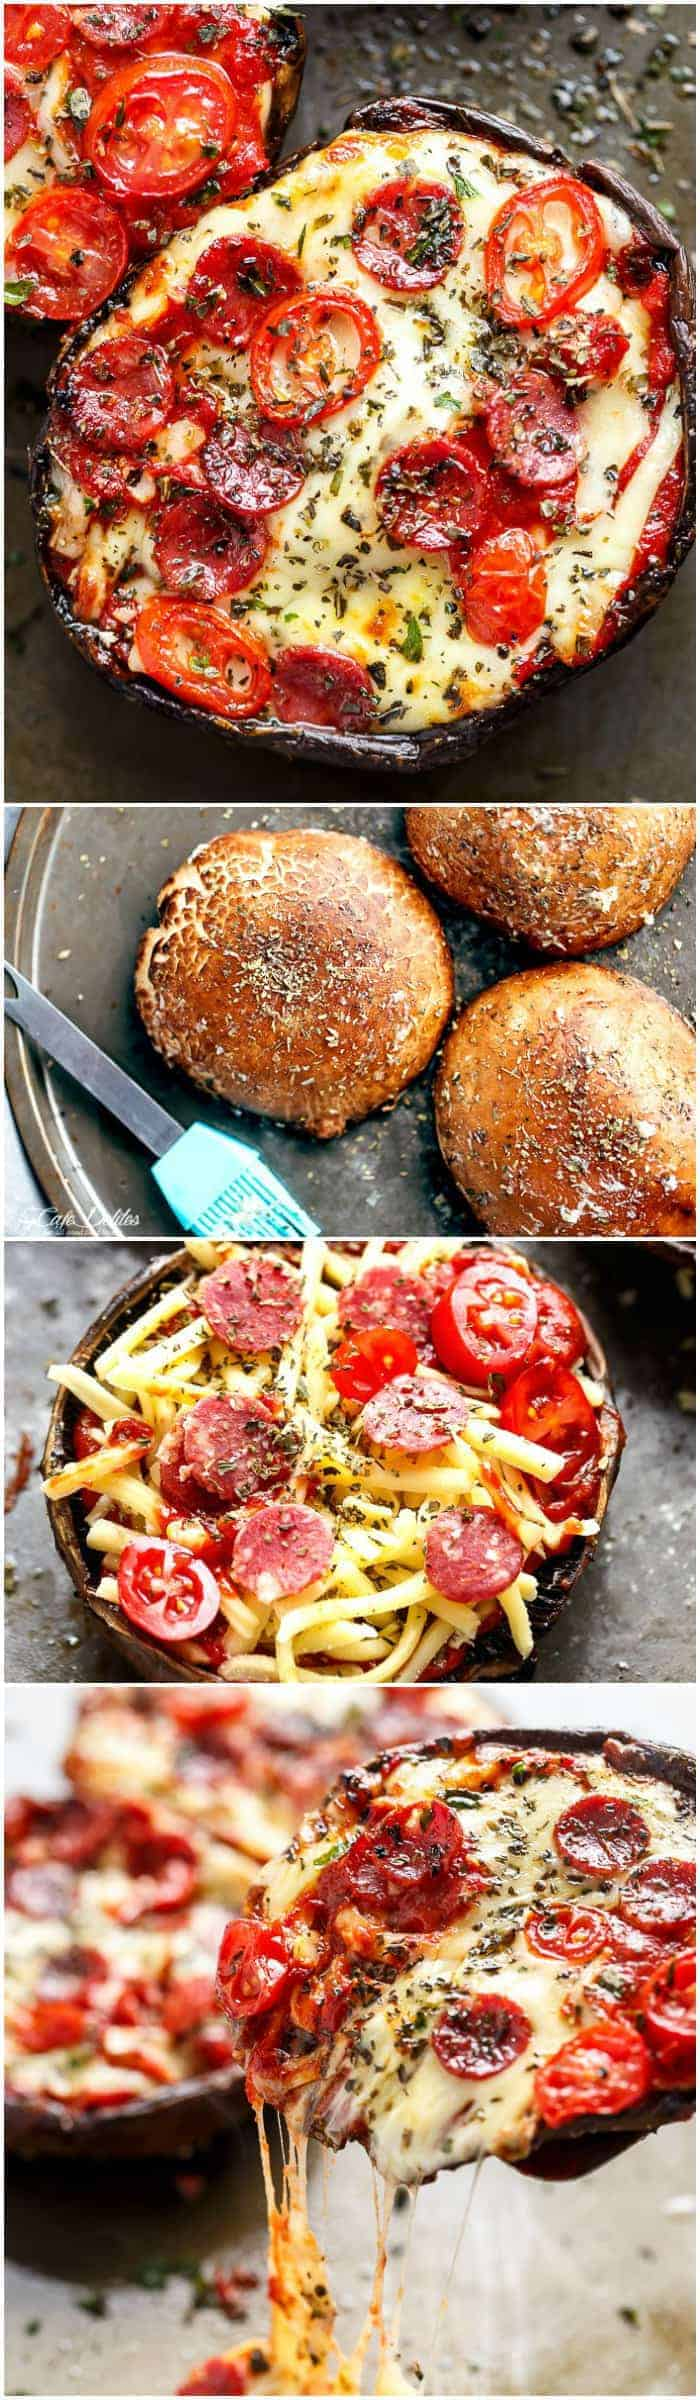 10-Minute Portobello Pizzas have ALL the flavours of a GOOD pizza without the guilt! These pizzas are quick and easy to make, low carb and ready in 10 minutes!   https://cafedelites.com